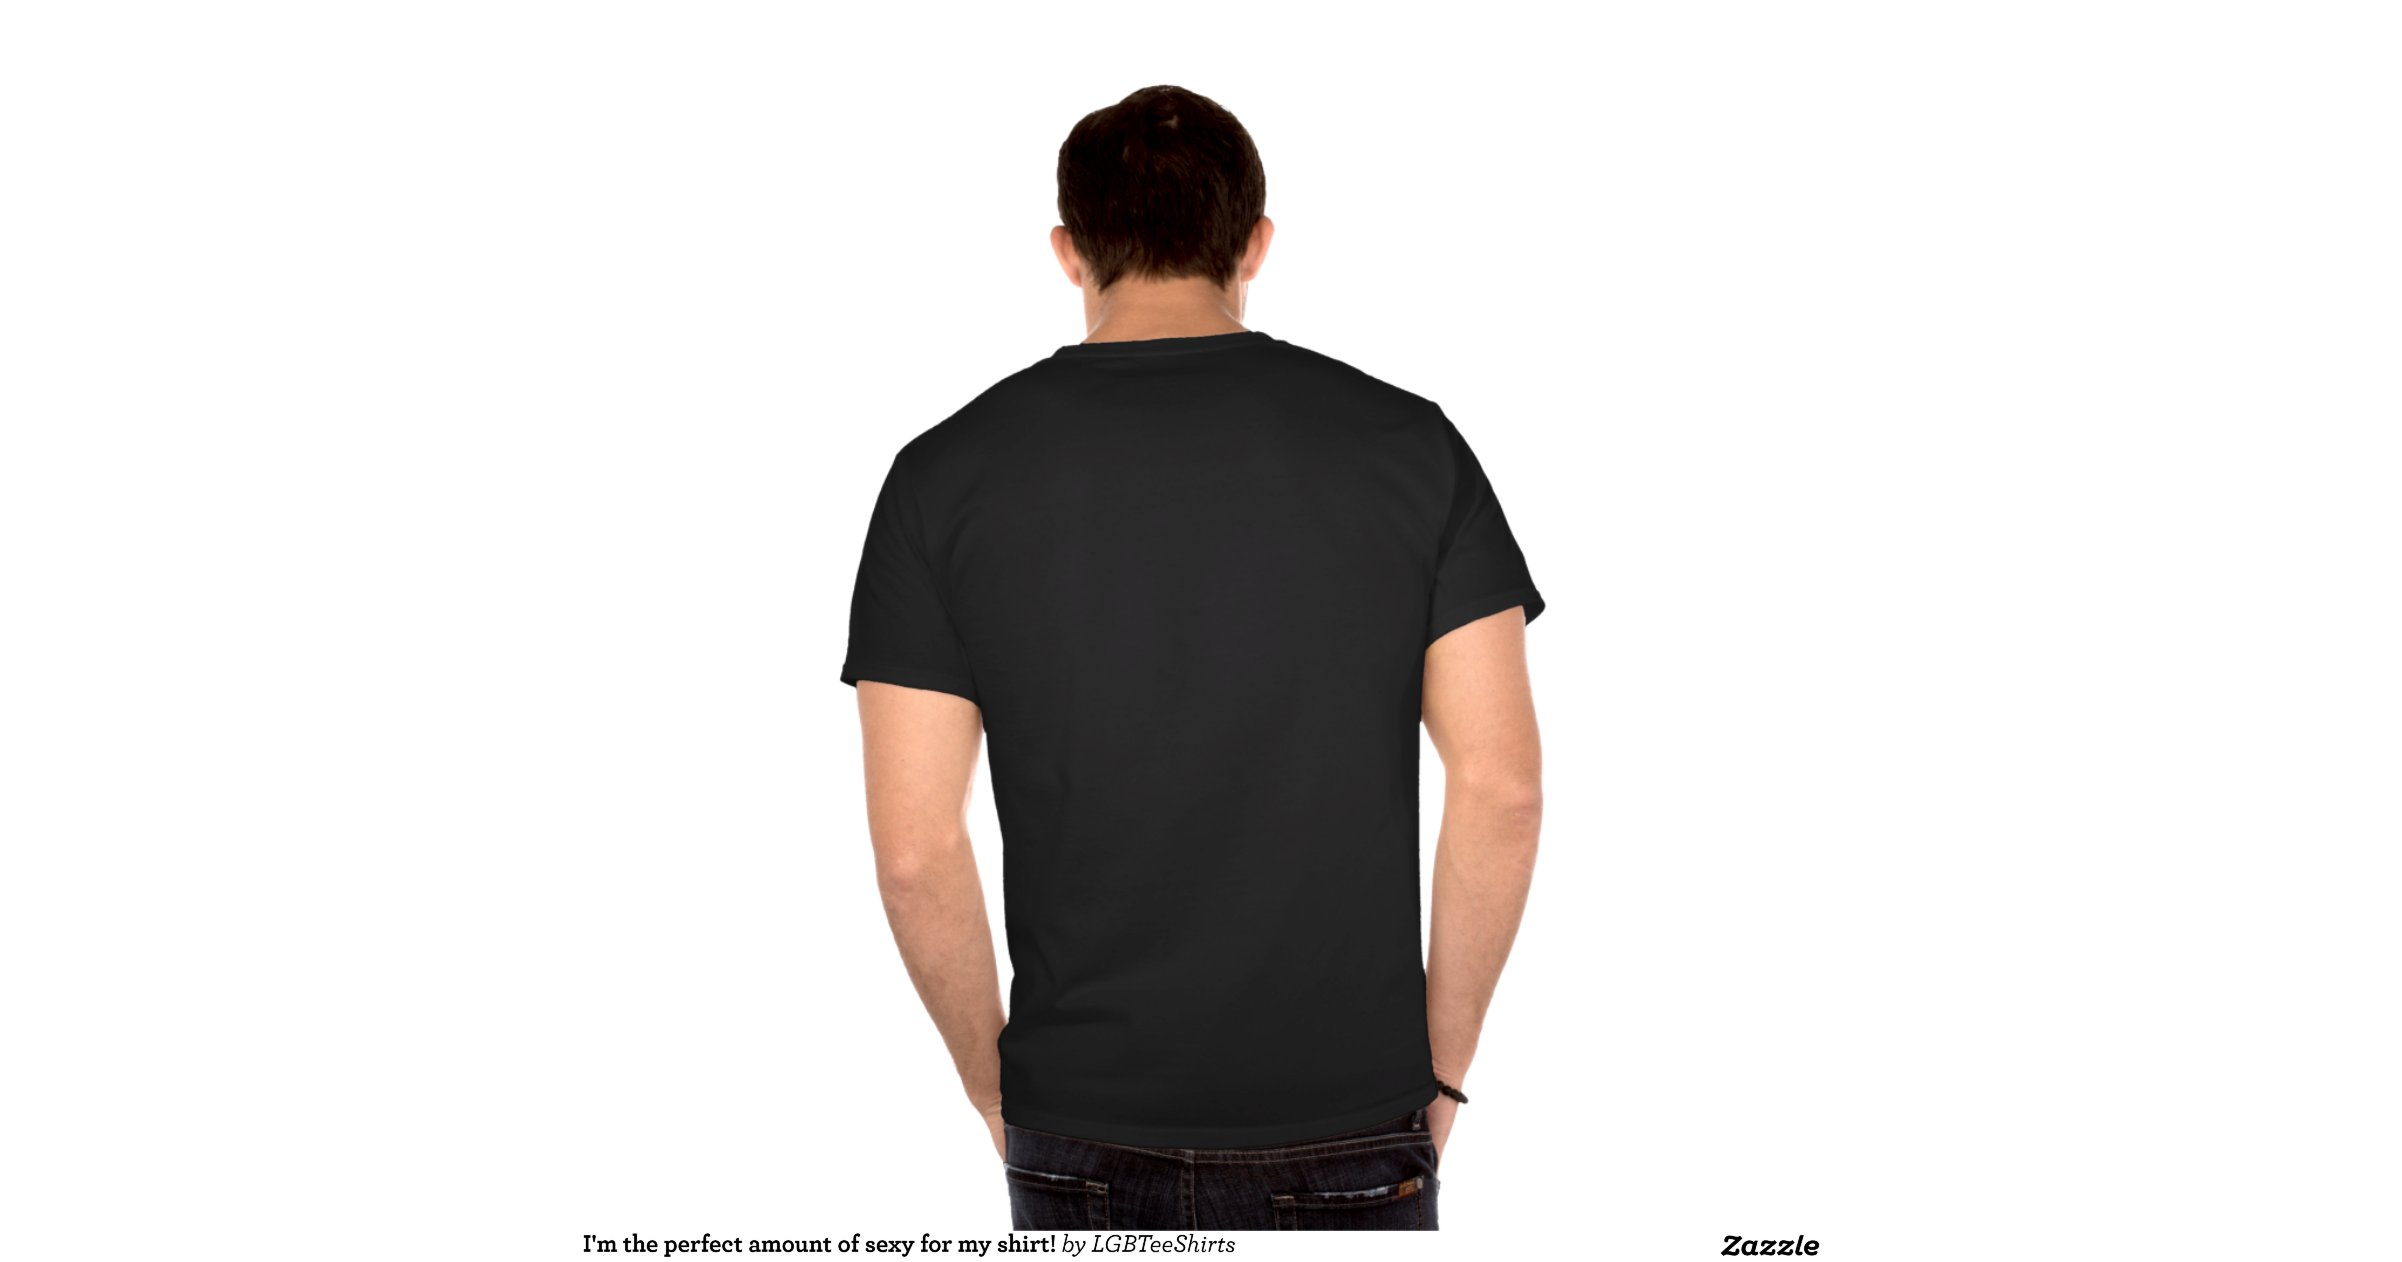 im to sexy for my shirt: